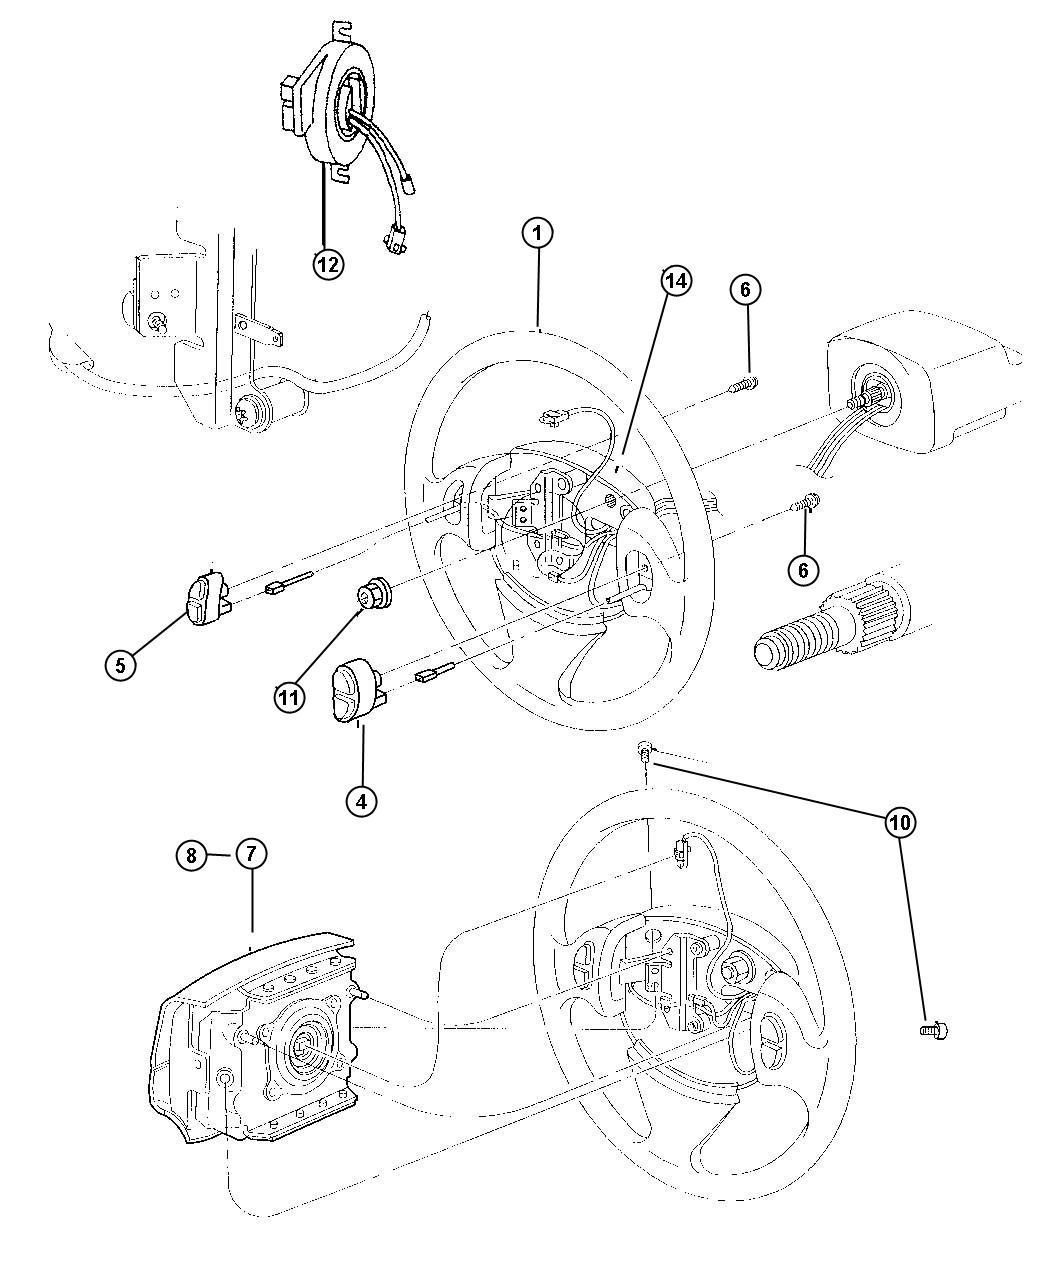 1973 dodge charger wiring diagram harness moreover plymouth voyager 1998 plymouth voyager service engine soon light